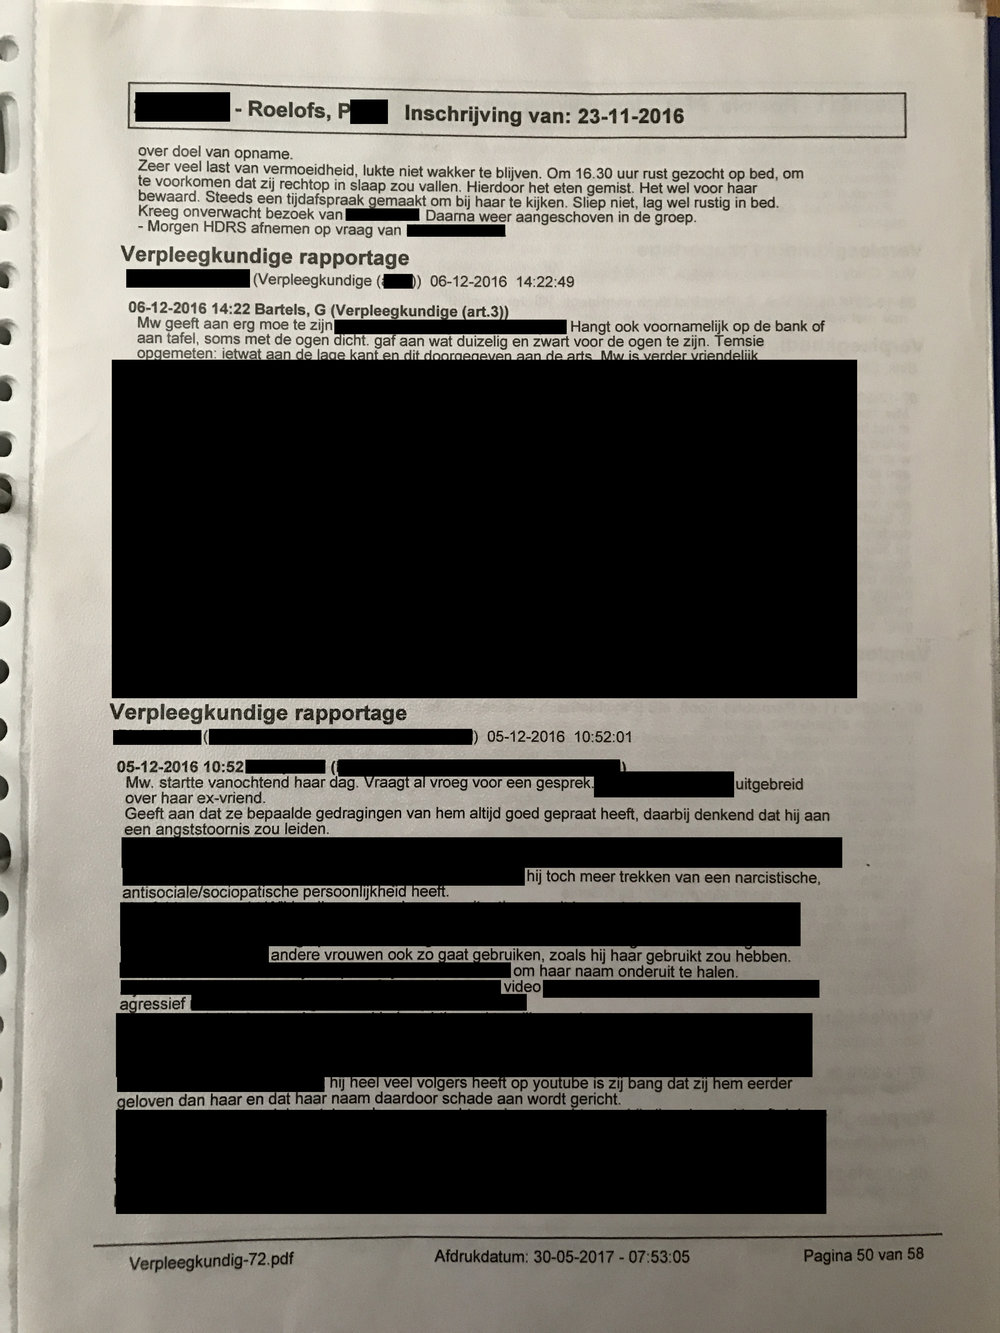 Due to my case, I censored important parts of this document, so my abuser can't prepare himself for court. What can be read in the unmarked text however (in Dutch) is how my nurses describe how sleepy (drugged) I was due to my medication, and how on December 5 already (weeks before my abuser visited me), I talked to them about my abuser. It's mentioned I talked to my nurses about having been blind to my abuser's behaviour before. About my abuser having an narcissistic/antisocial/sociopathic personality disorder, and my fear that he will use other women like he used me, and that he will slander my name online. You can see words such as 'aggressive' and 'video' and 'youtube', referring to evidence videos of his behaviour to me, and him having a youtube channel and many fans which he could use to target me. Which, happened, in the end.